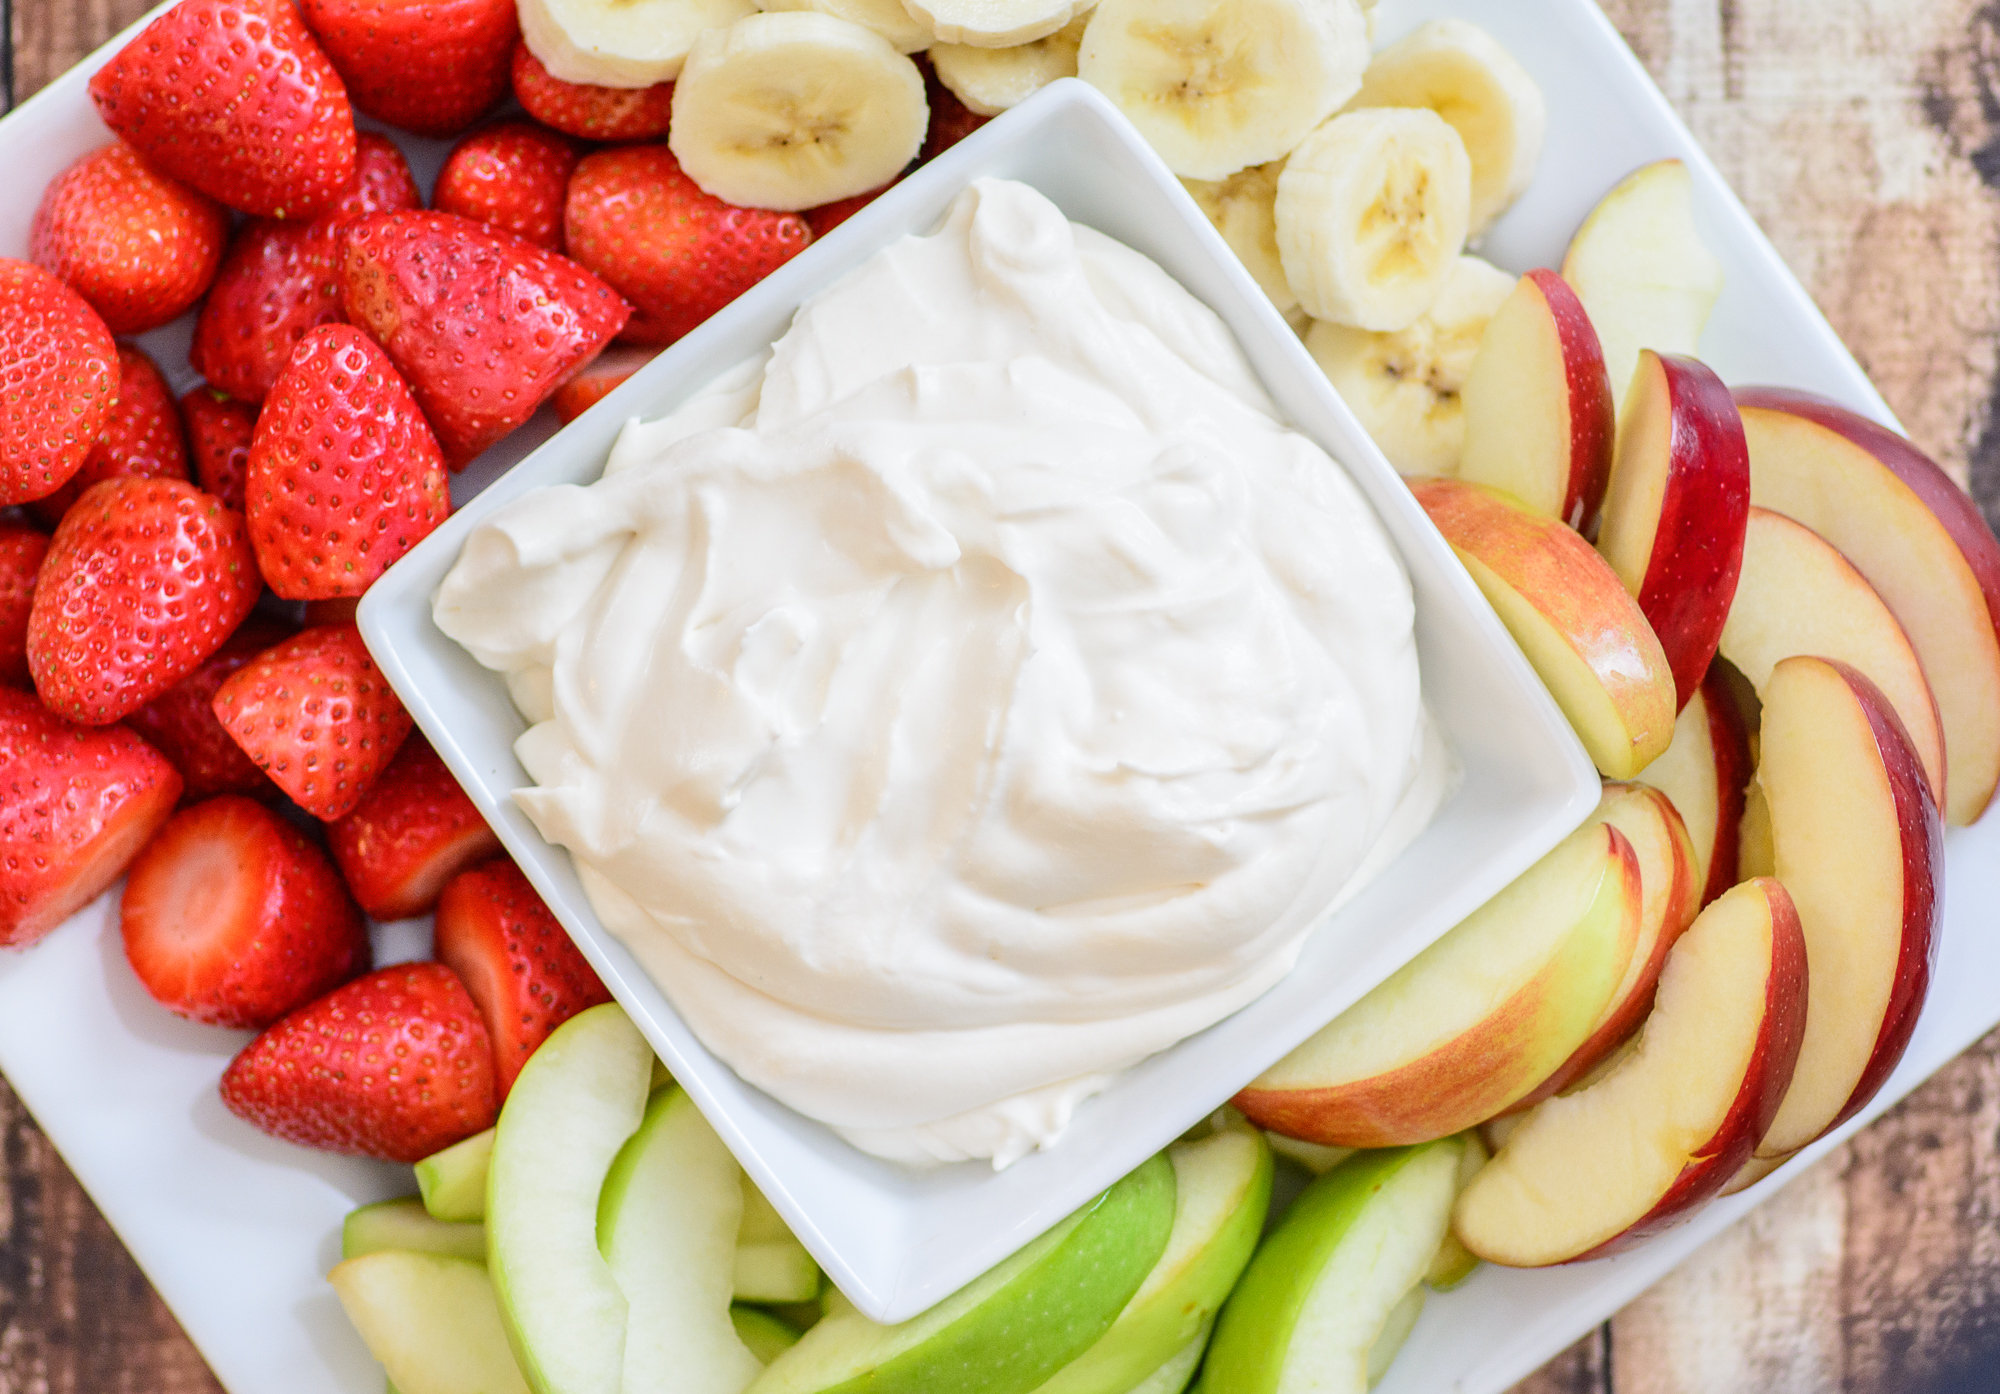 Healthy 3 Ingredient Yogurt Fruit Dip. This healthy and delicious recipe is the perfect compliment to any fruit plate. Made with 3 simple and pure ingredients this fruit dip recipe is sure to be a hit no matter where you serve it!